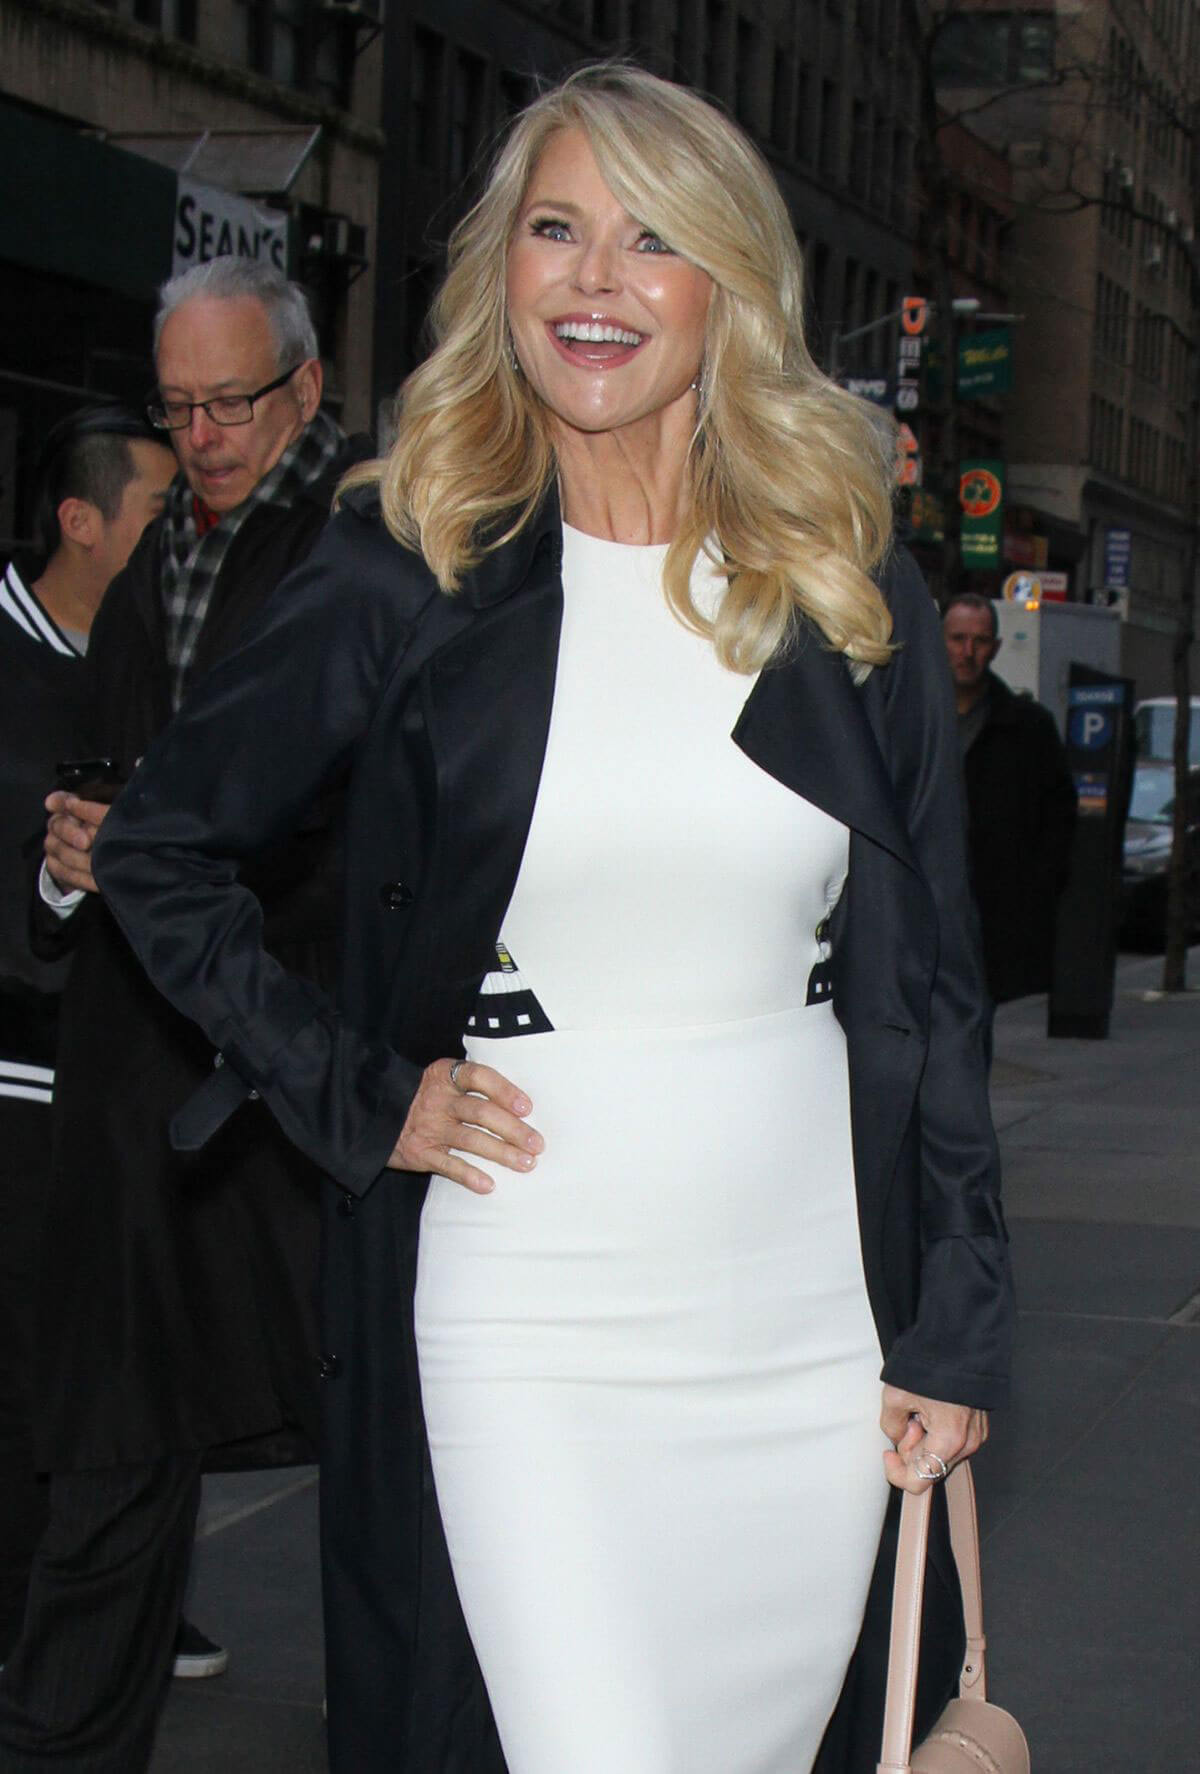 Christie Brinkley Stills at Today Show in New York